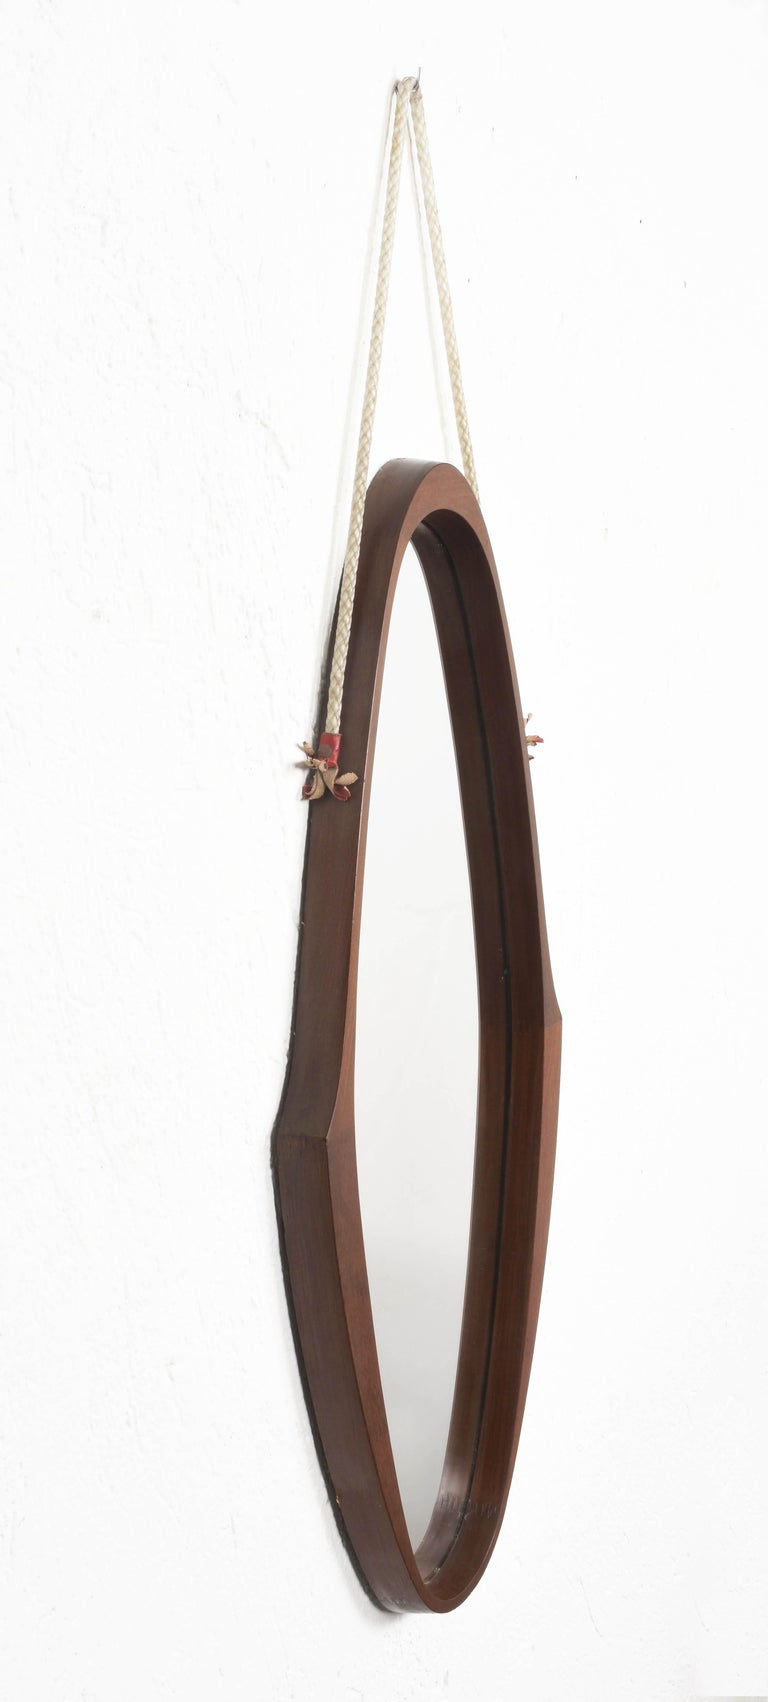 Midcentury Oval Teak, Nylon Rope and Leather Italian Wall Framed Mirror, 1960s For Sale 6